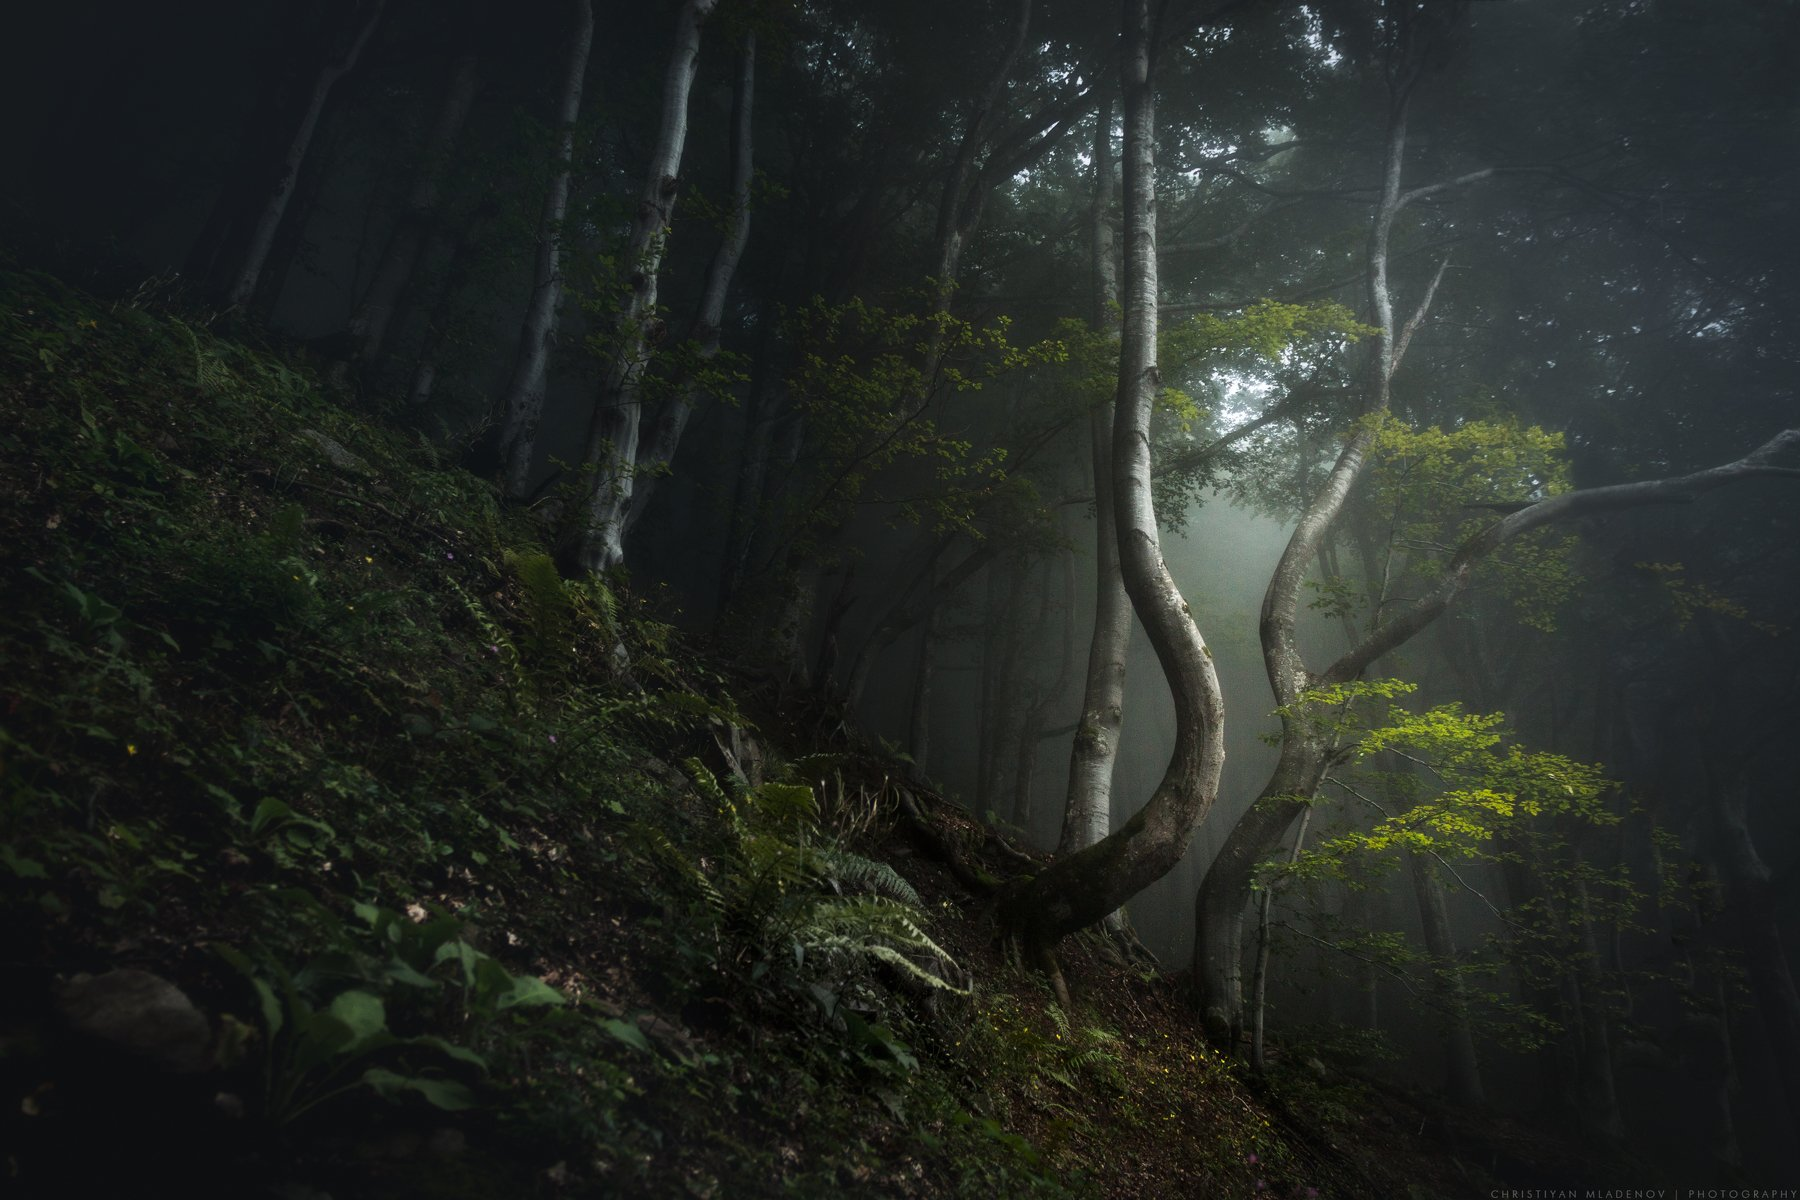 landscape, forest, tree, wide angle, fog, mist, mountain, woods, spring, bulgaria, nature, green, plant, weed, leafs, dream, panorama, woodland, gora, mountain, shapes, bizare, tale, magic, fantasy, Кристиян Младенов